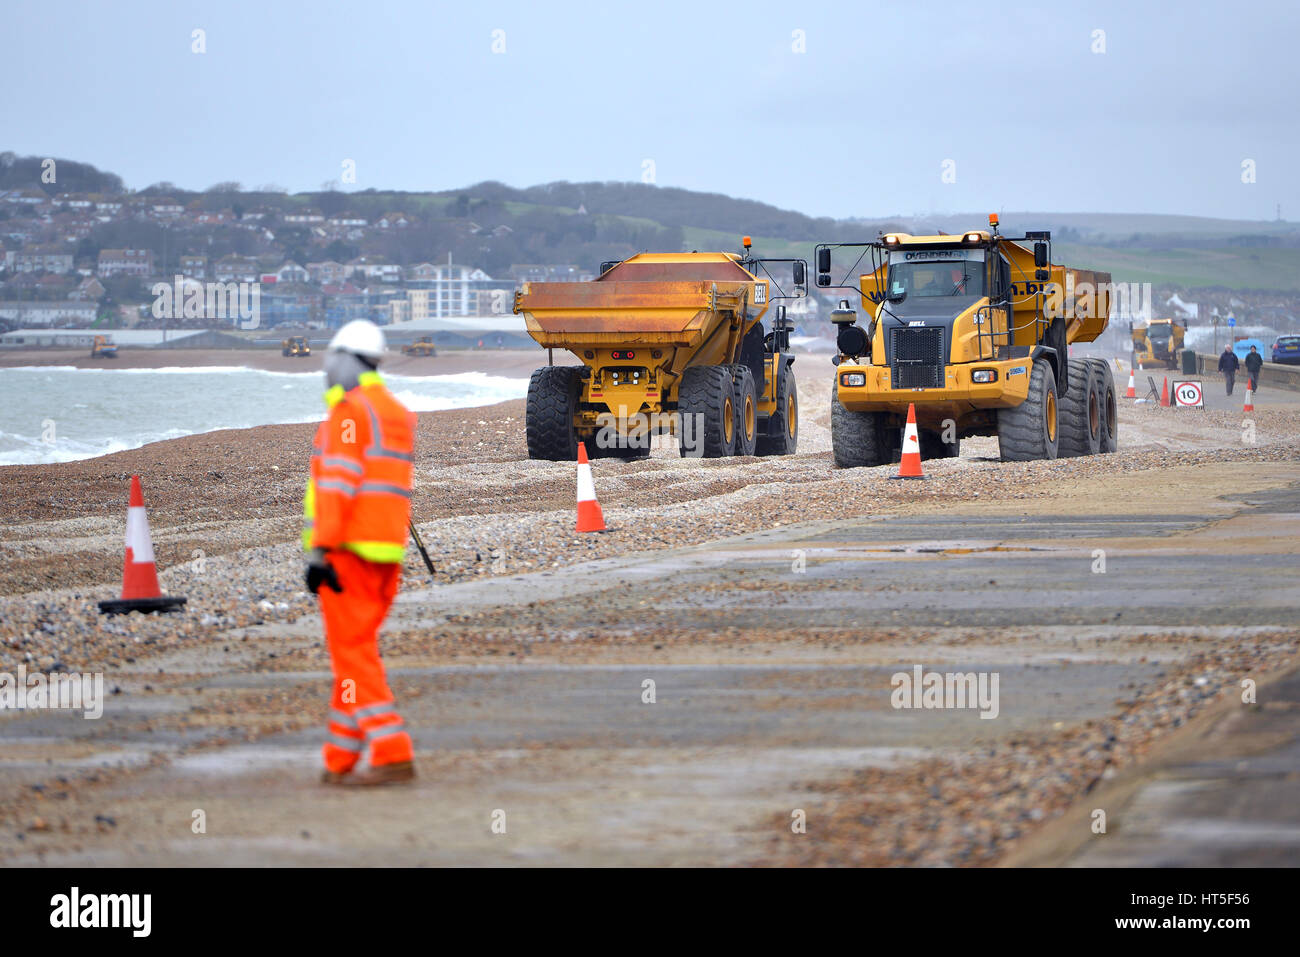 Beach repairs - Moving shingle along Seaford beach after winter storms washed away the pebbles. - Stock Image